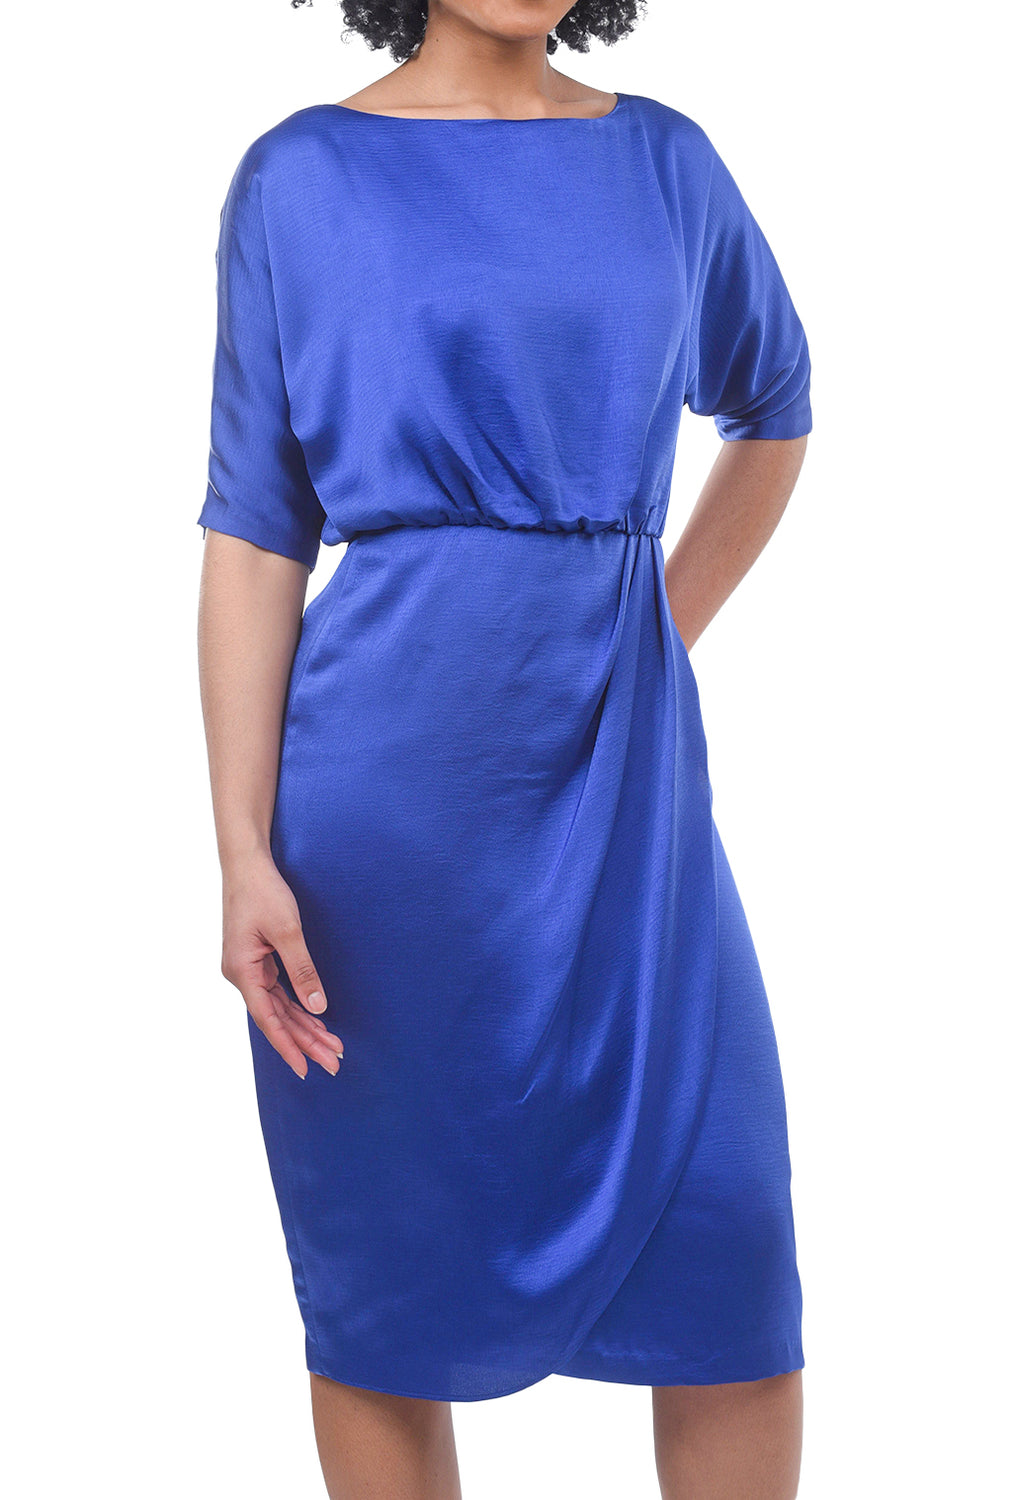 Maggy London Draped Blouson Dress, Empire Blue